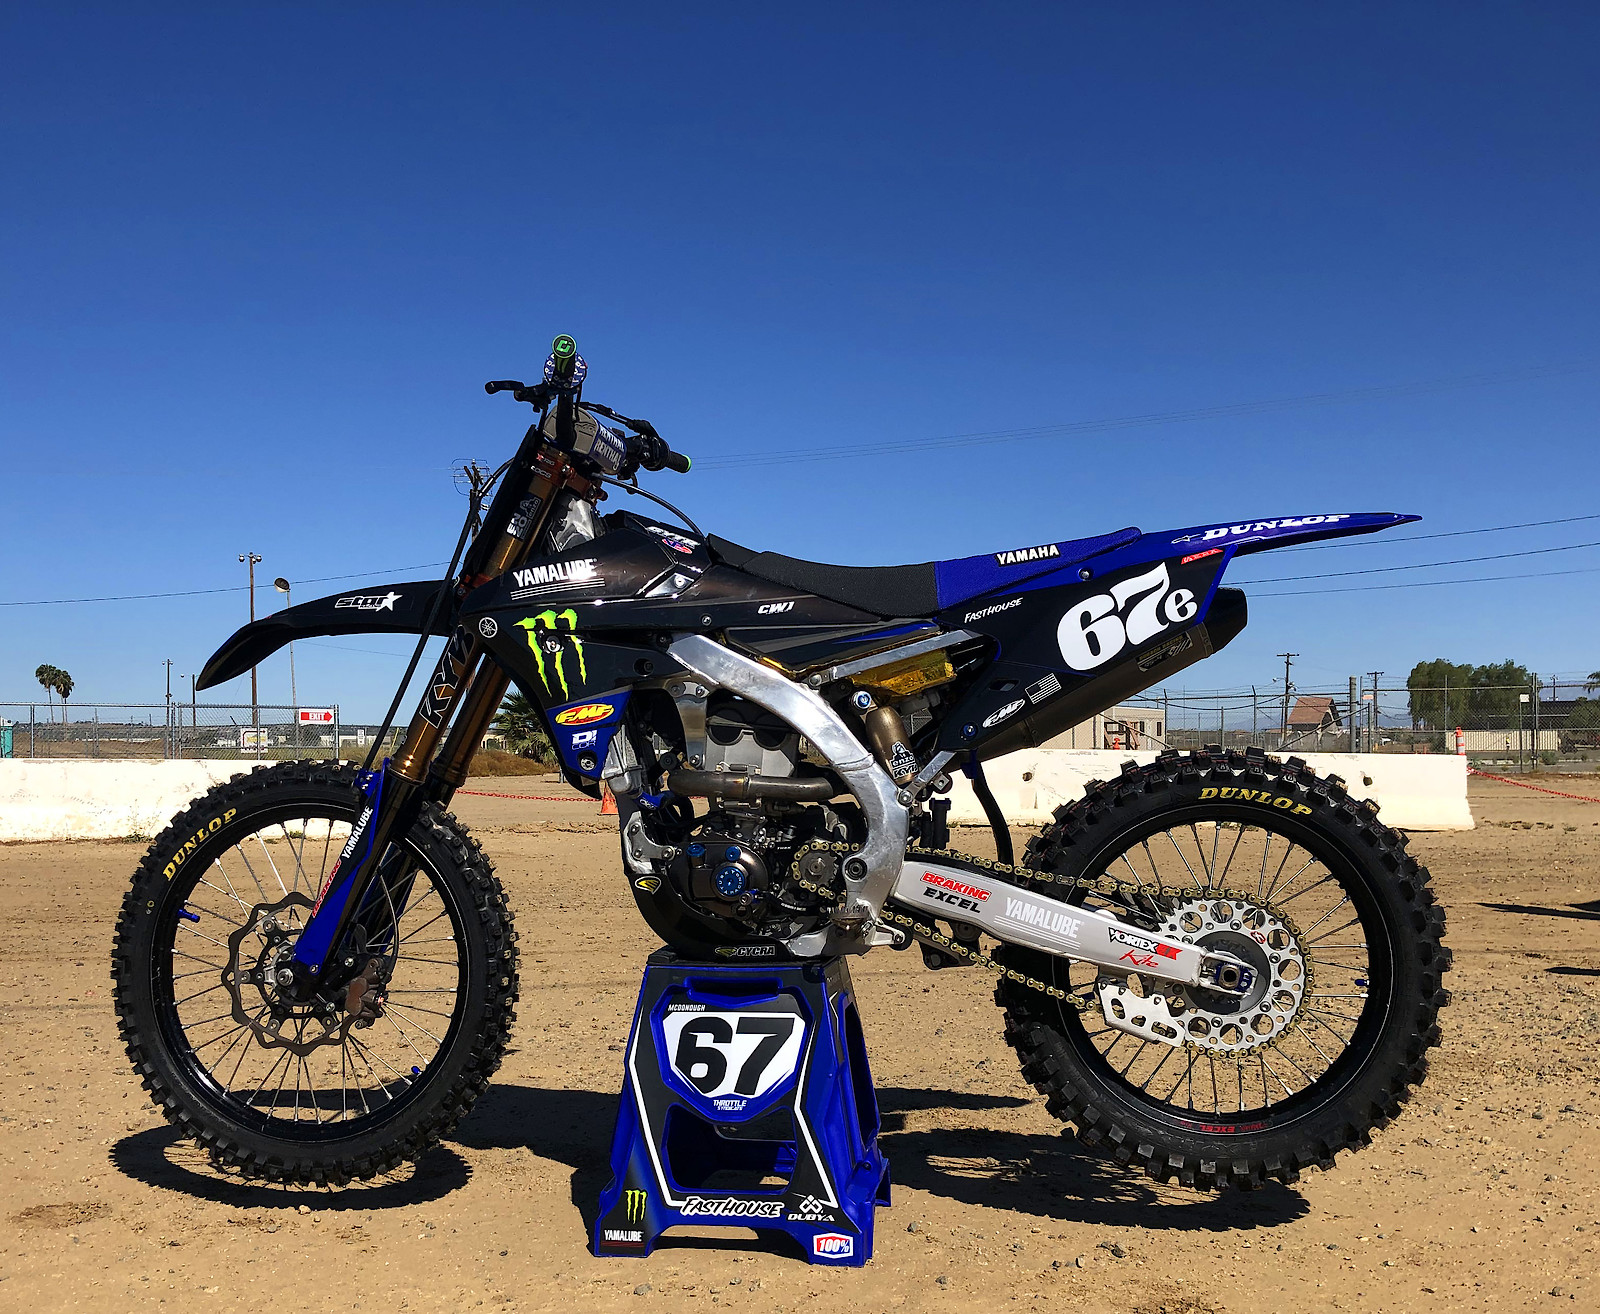 2015 Yamaha YZ250f Star racing replica